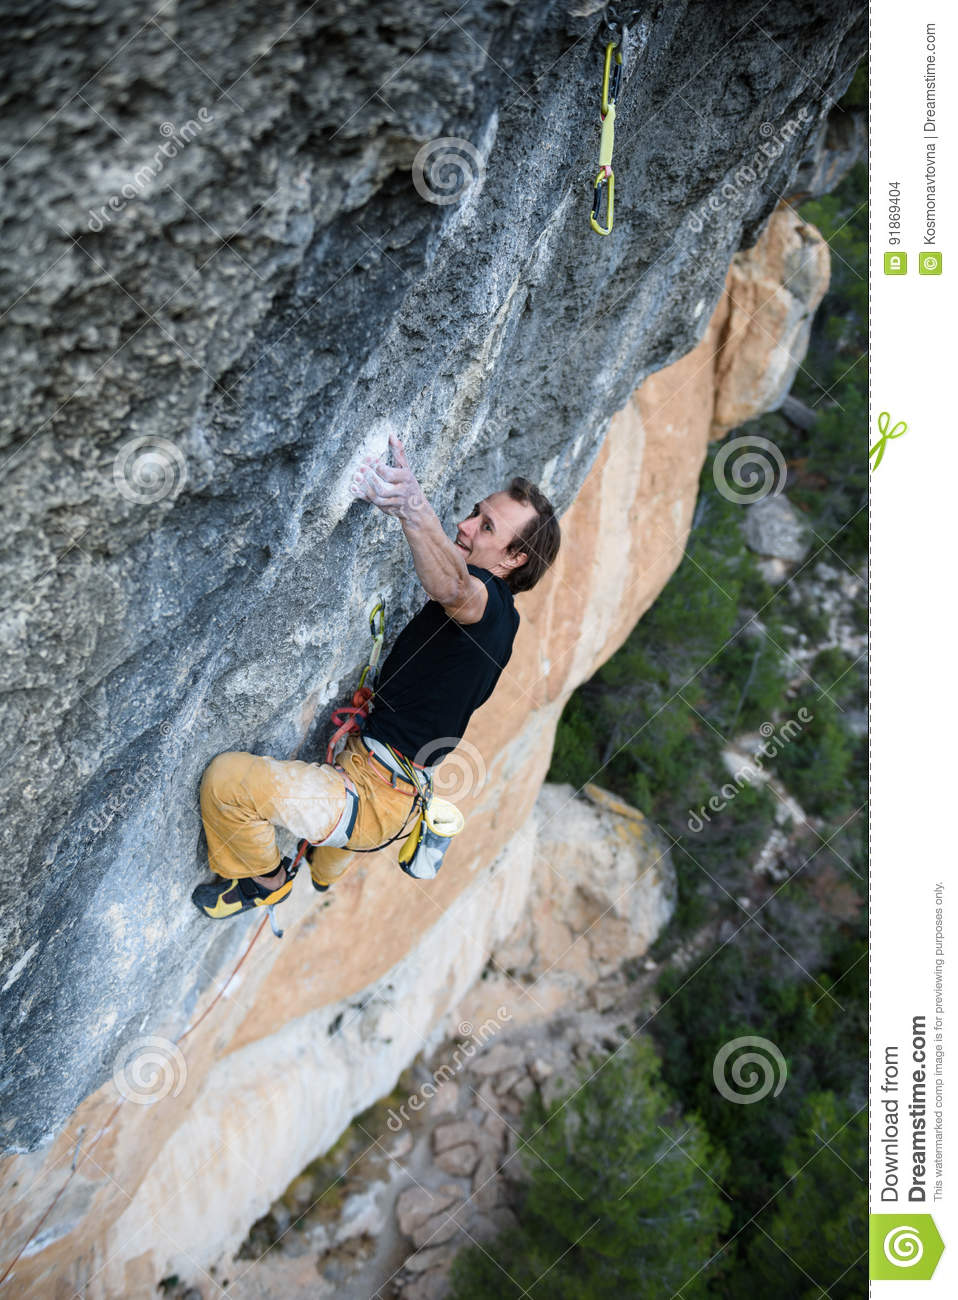 Rock climber ascending a challenging cliff. Extreme sport climbing. Freedom, risk, challenge, success. Sport and active life